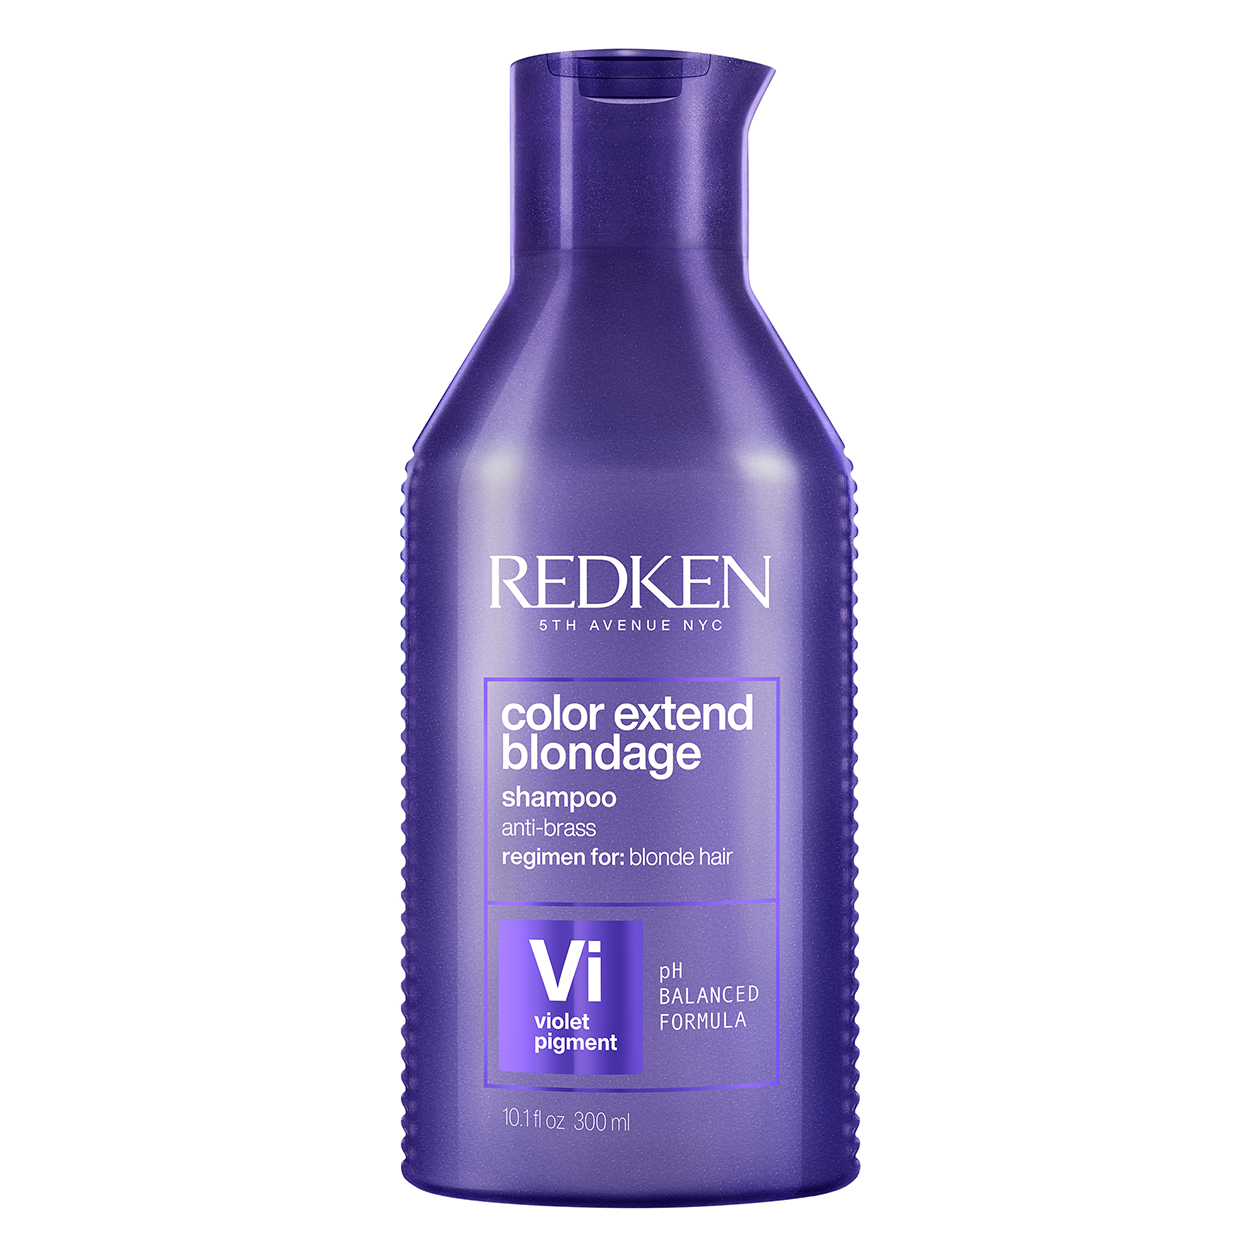 Redken color extend blondage shampoo.jpg